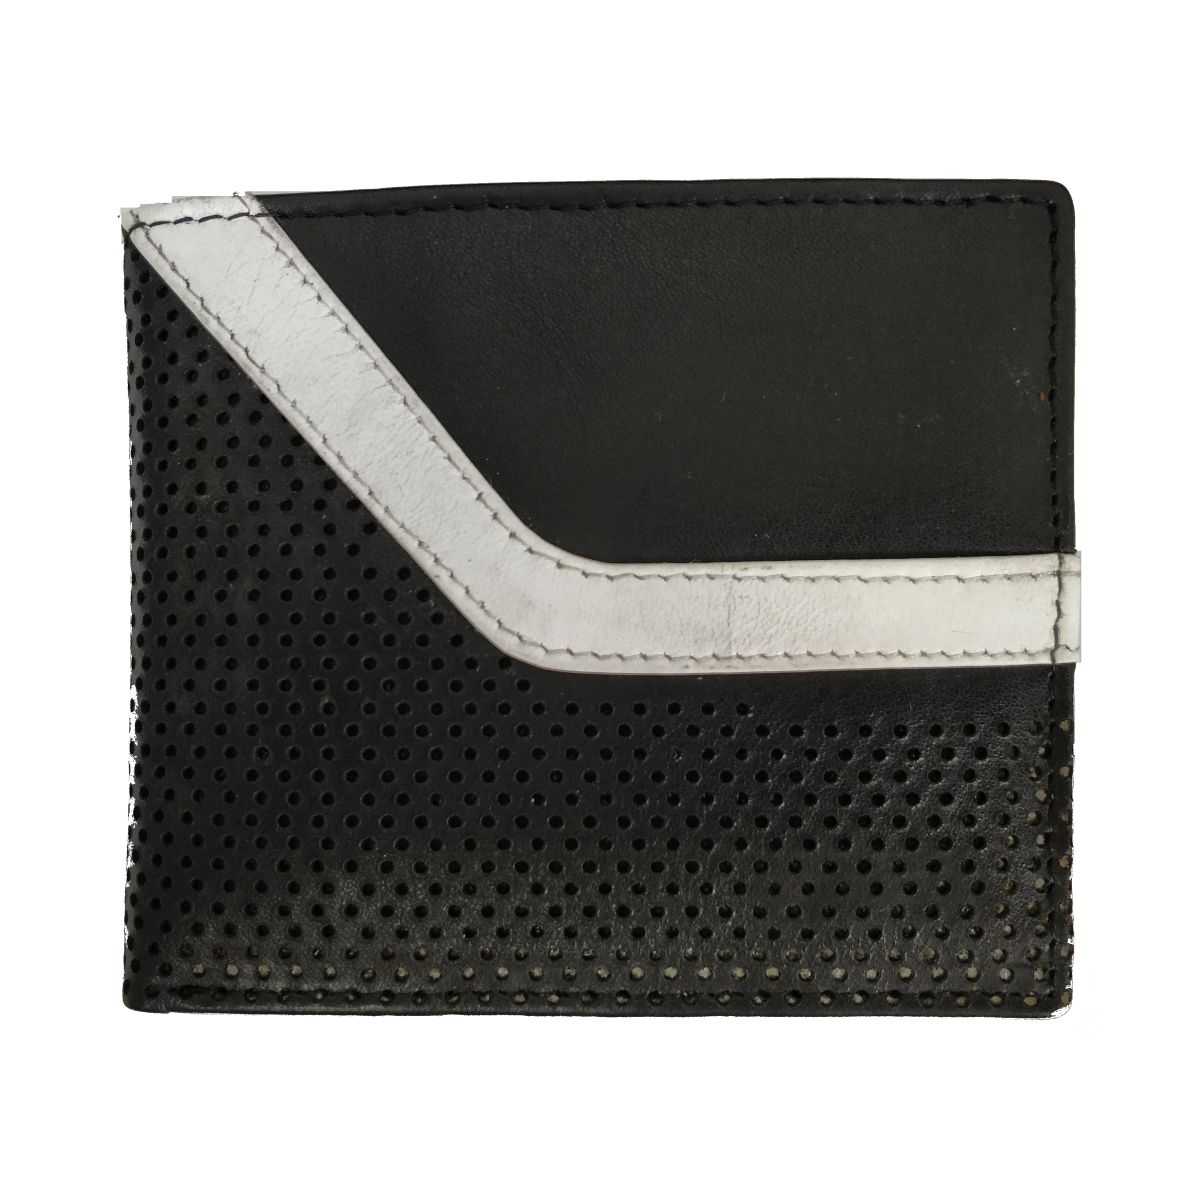 Leather Wallet With Broken Strip and Coin Pouch - Black/Blue